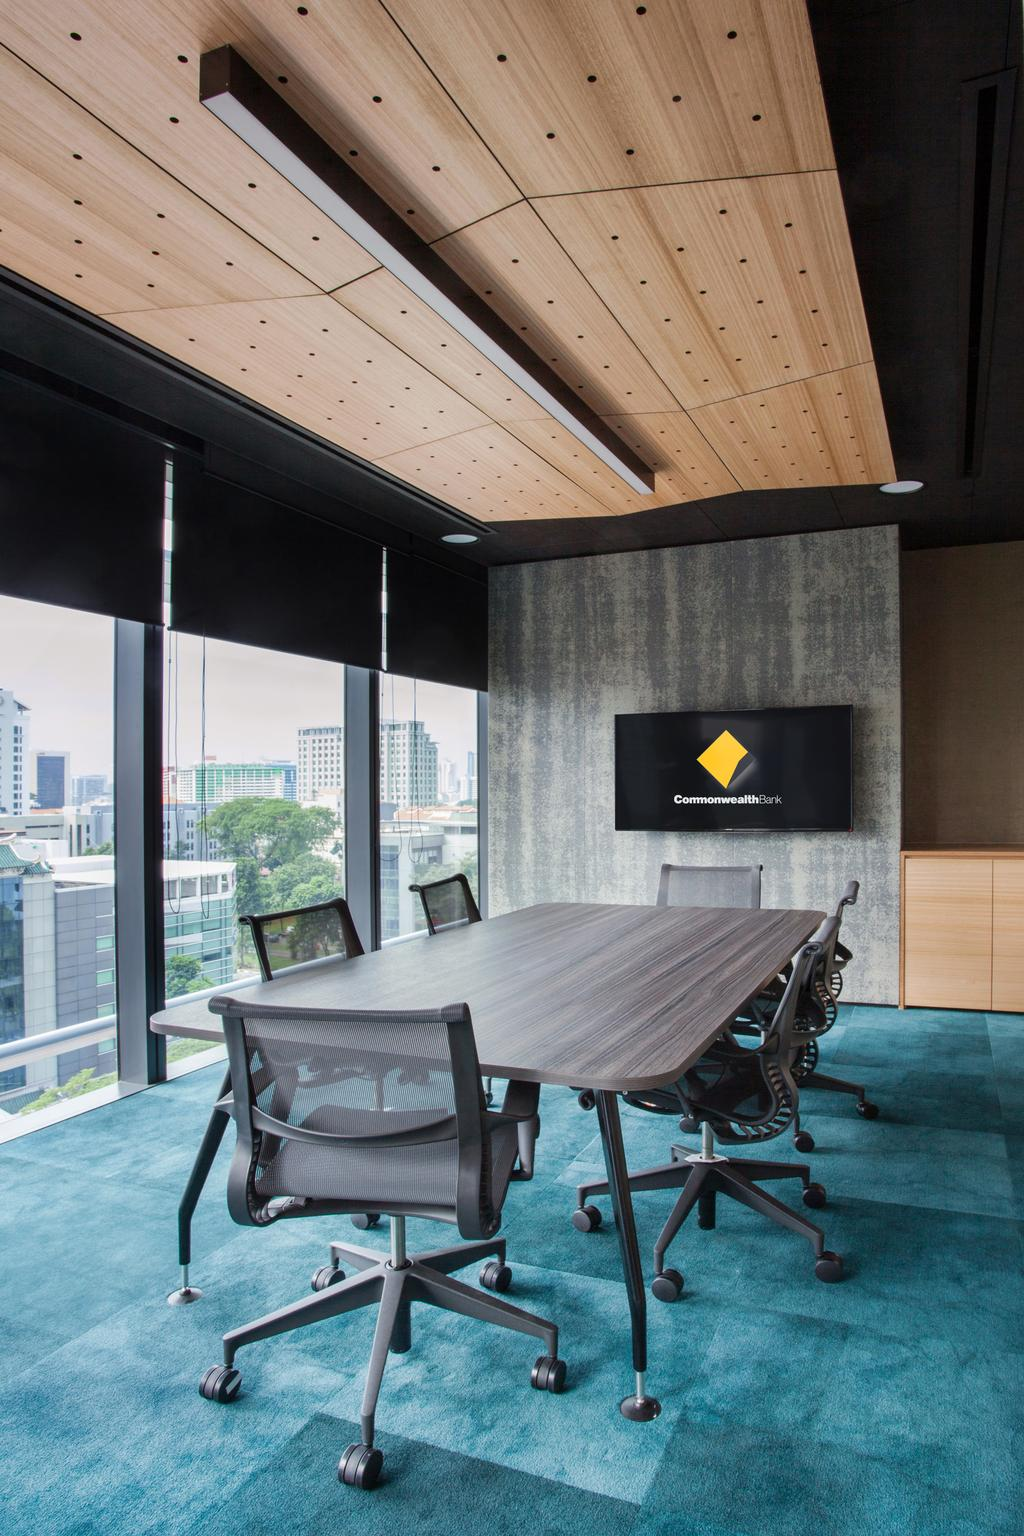 Commonwealth Bank of Australia, Commercial, Architect, designphase dba, Contemporary, Toilet, Chair, Furniture, Dining Table, Table